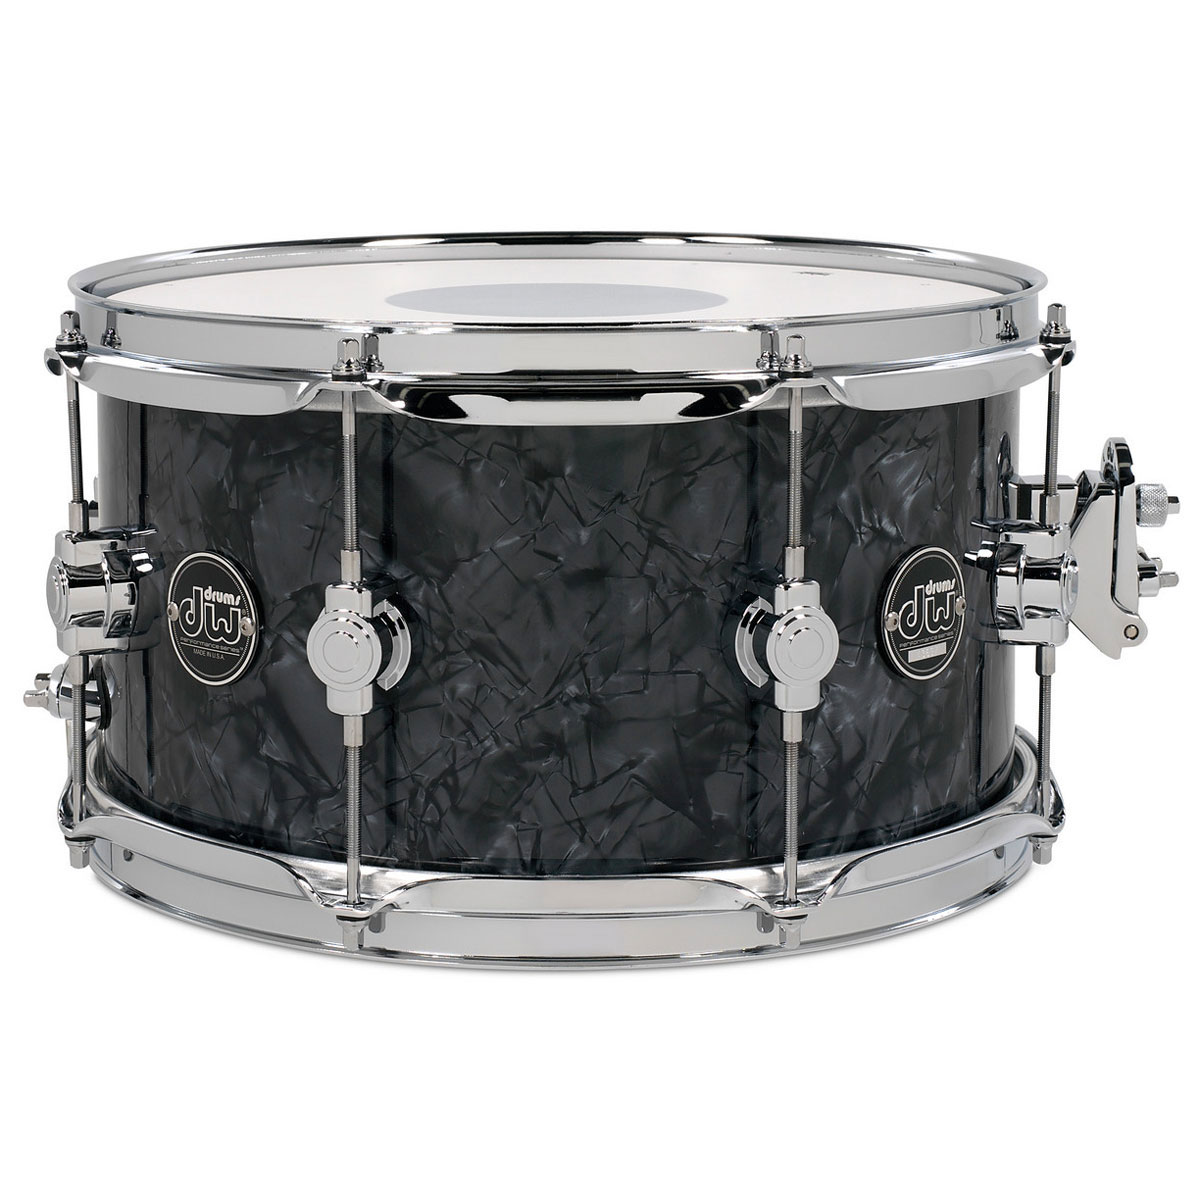 "DW 7"" x 13"" Performance Series Snare Drum in FinishPly/Satin Oil Finish"